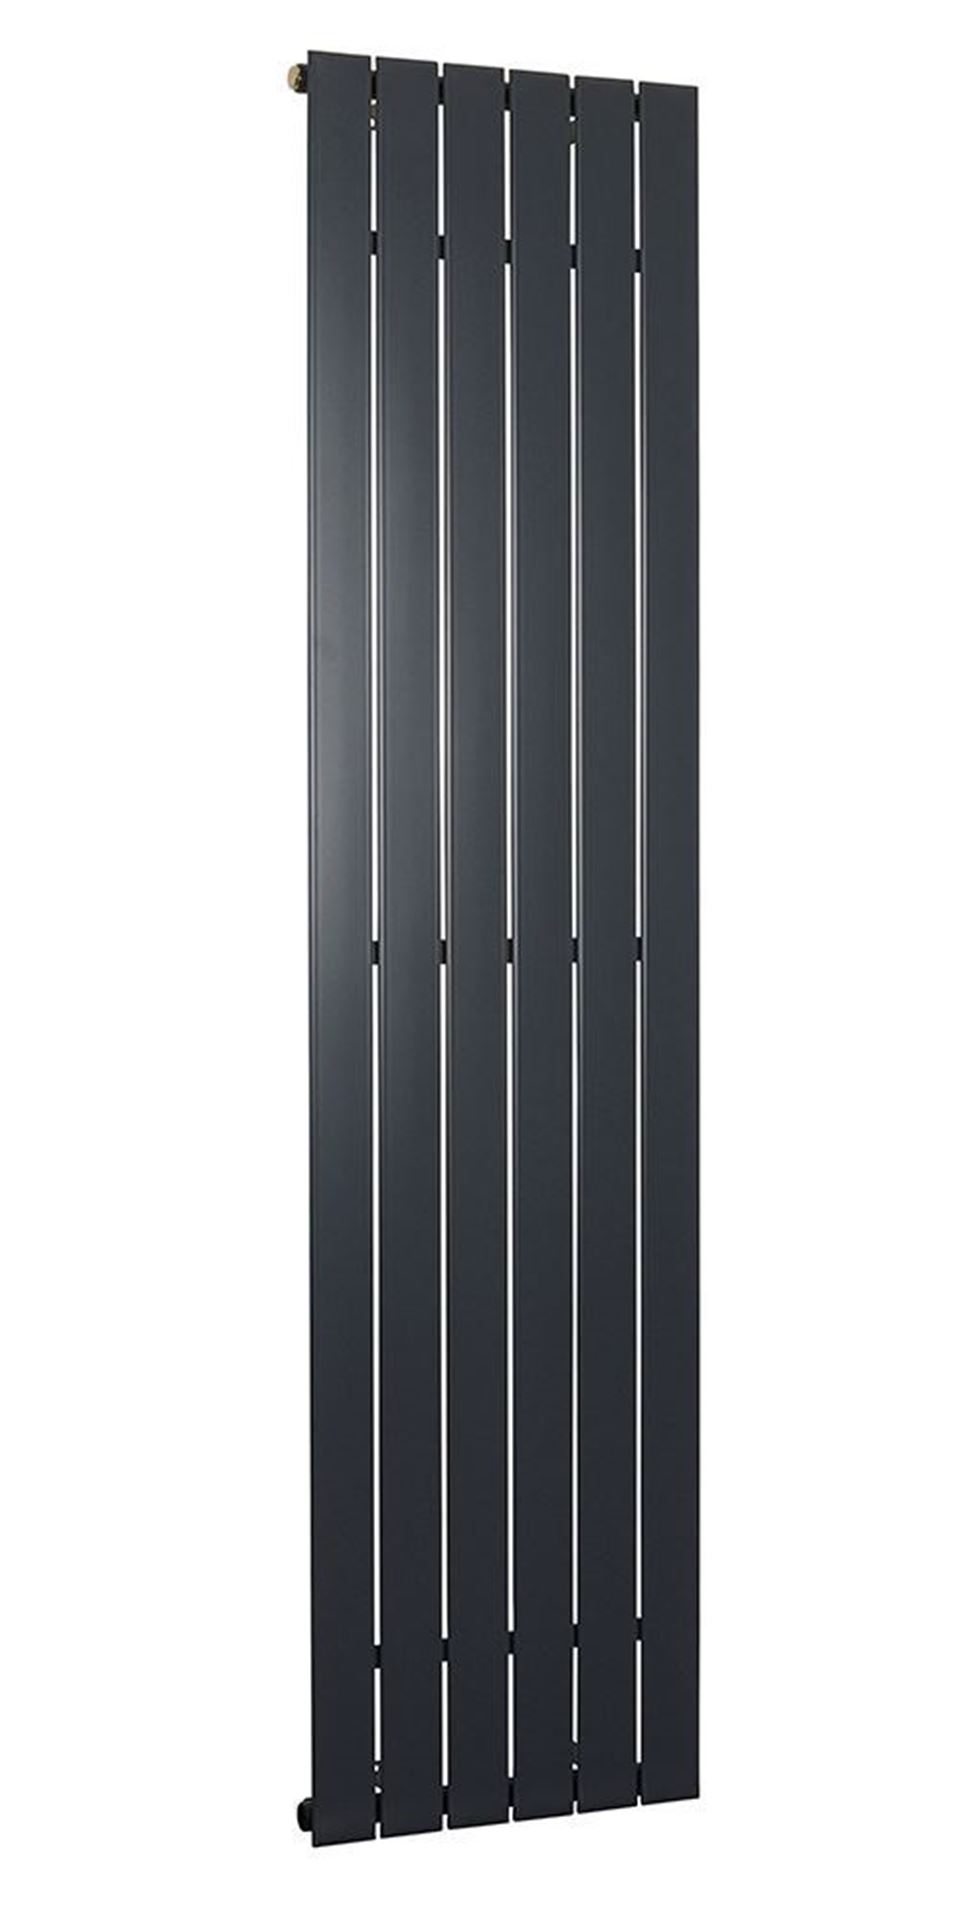 Lorenza Vertical Anthracite Single Radiator 1800mm x 445mm 2835 BTU